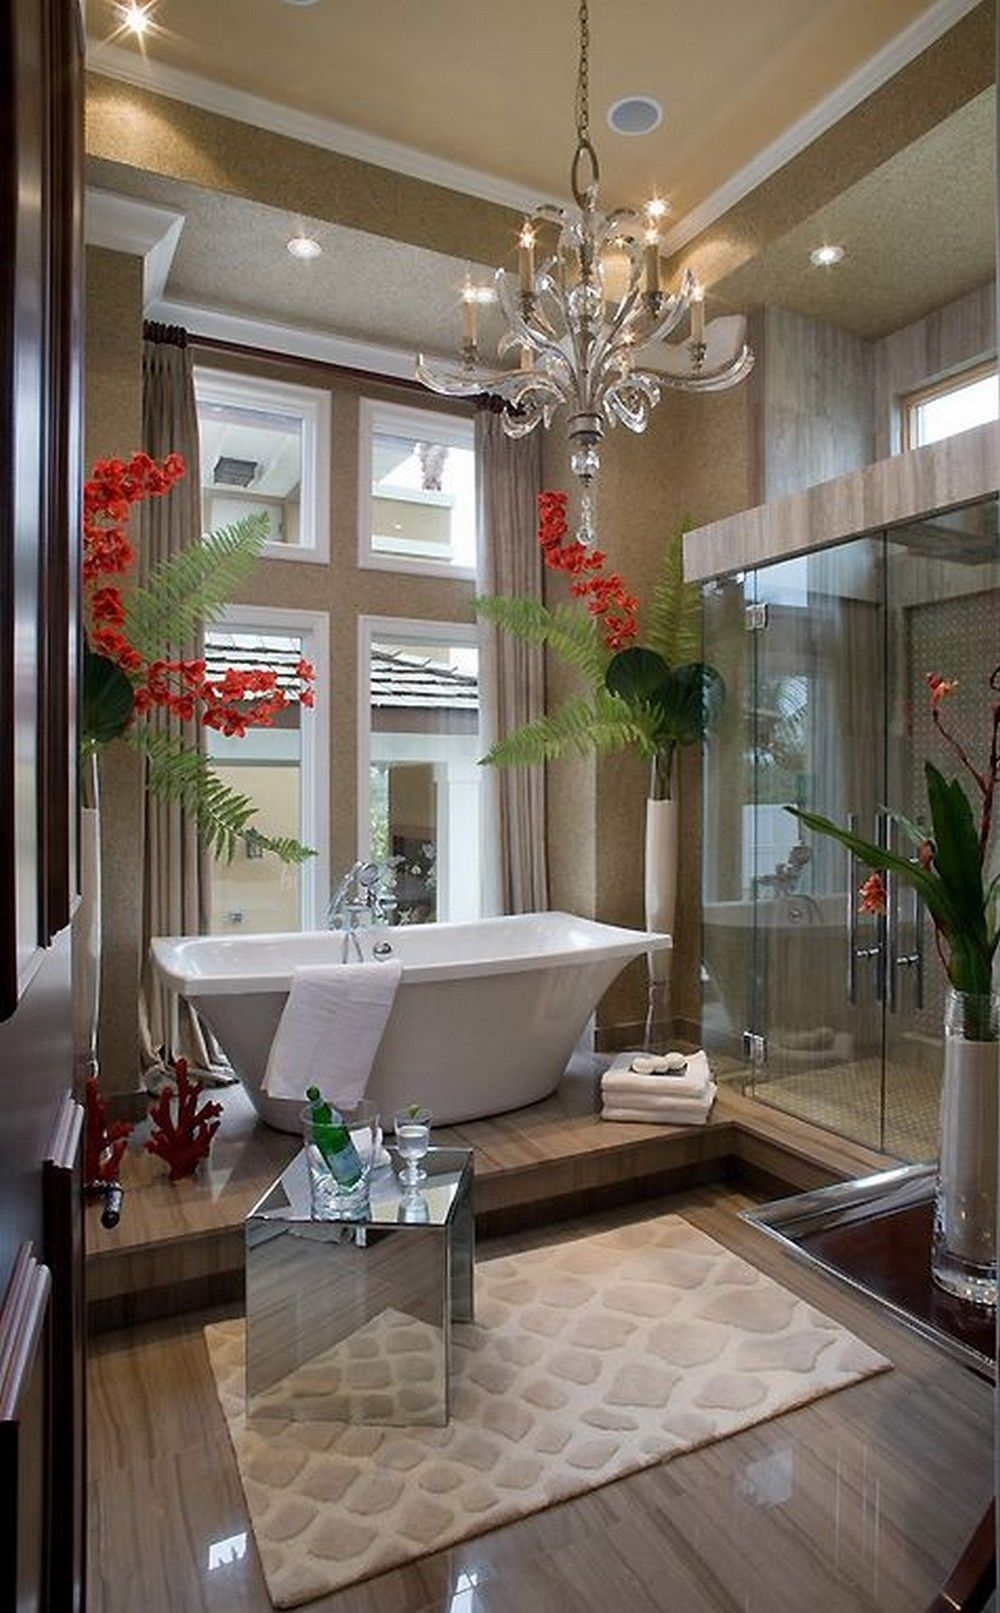 125 Fancy Modern Tub Bathroom Decor Ideas